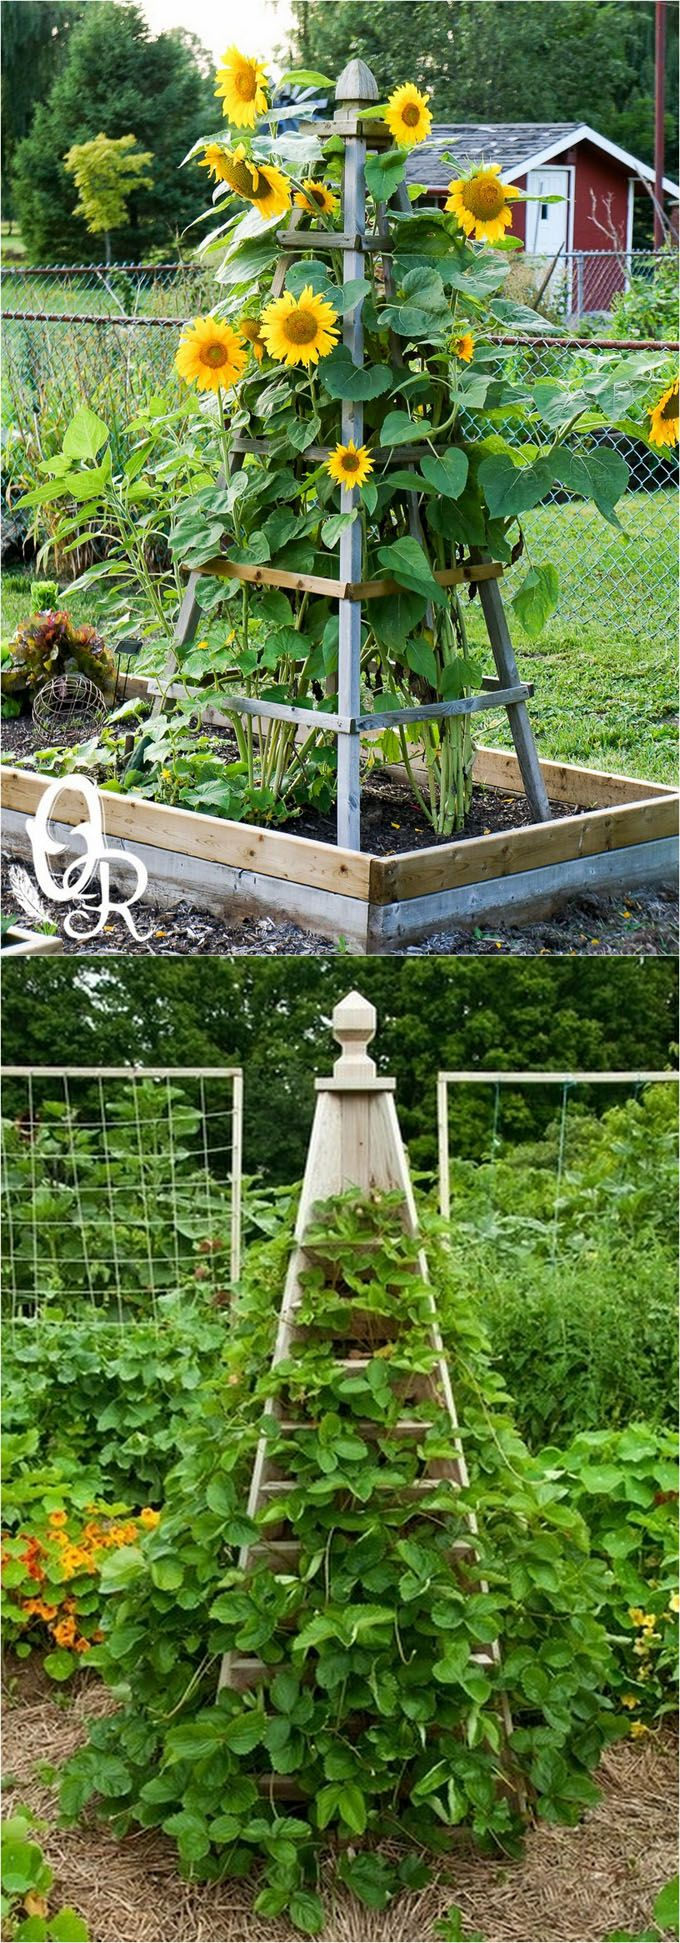 Medium Of Garden Structures Ideas